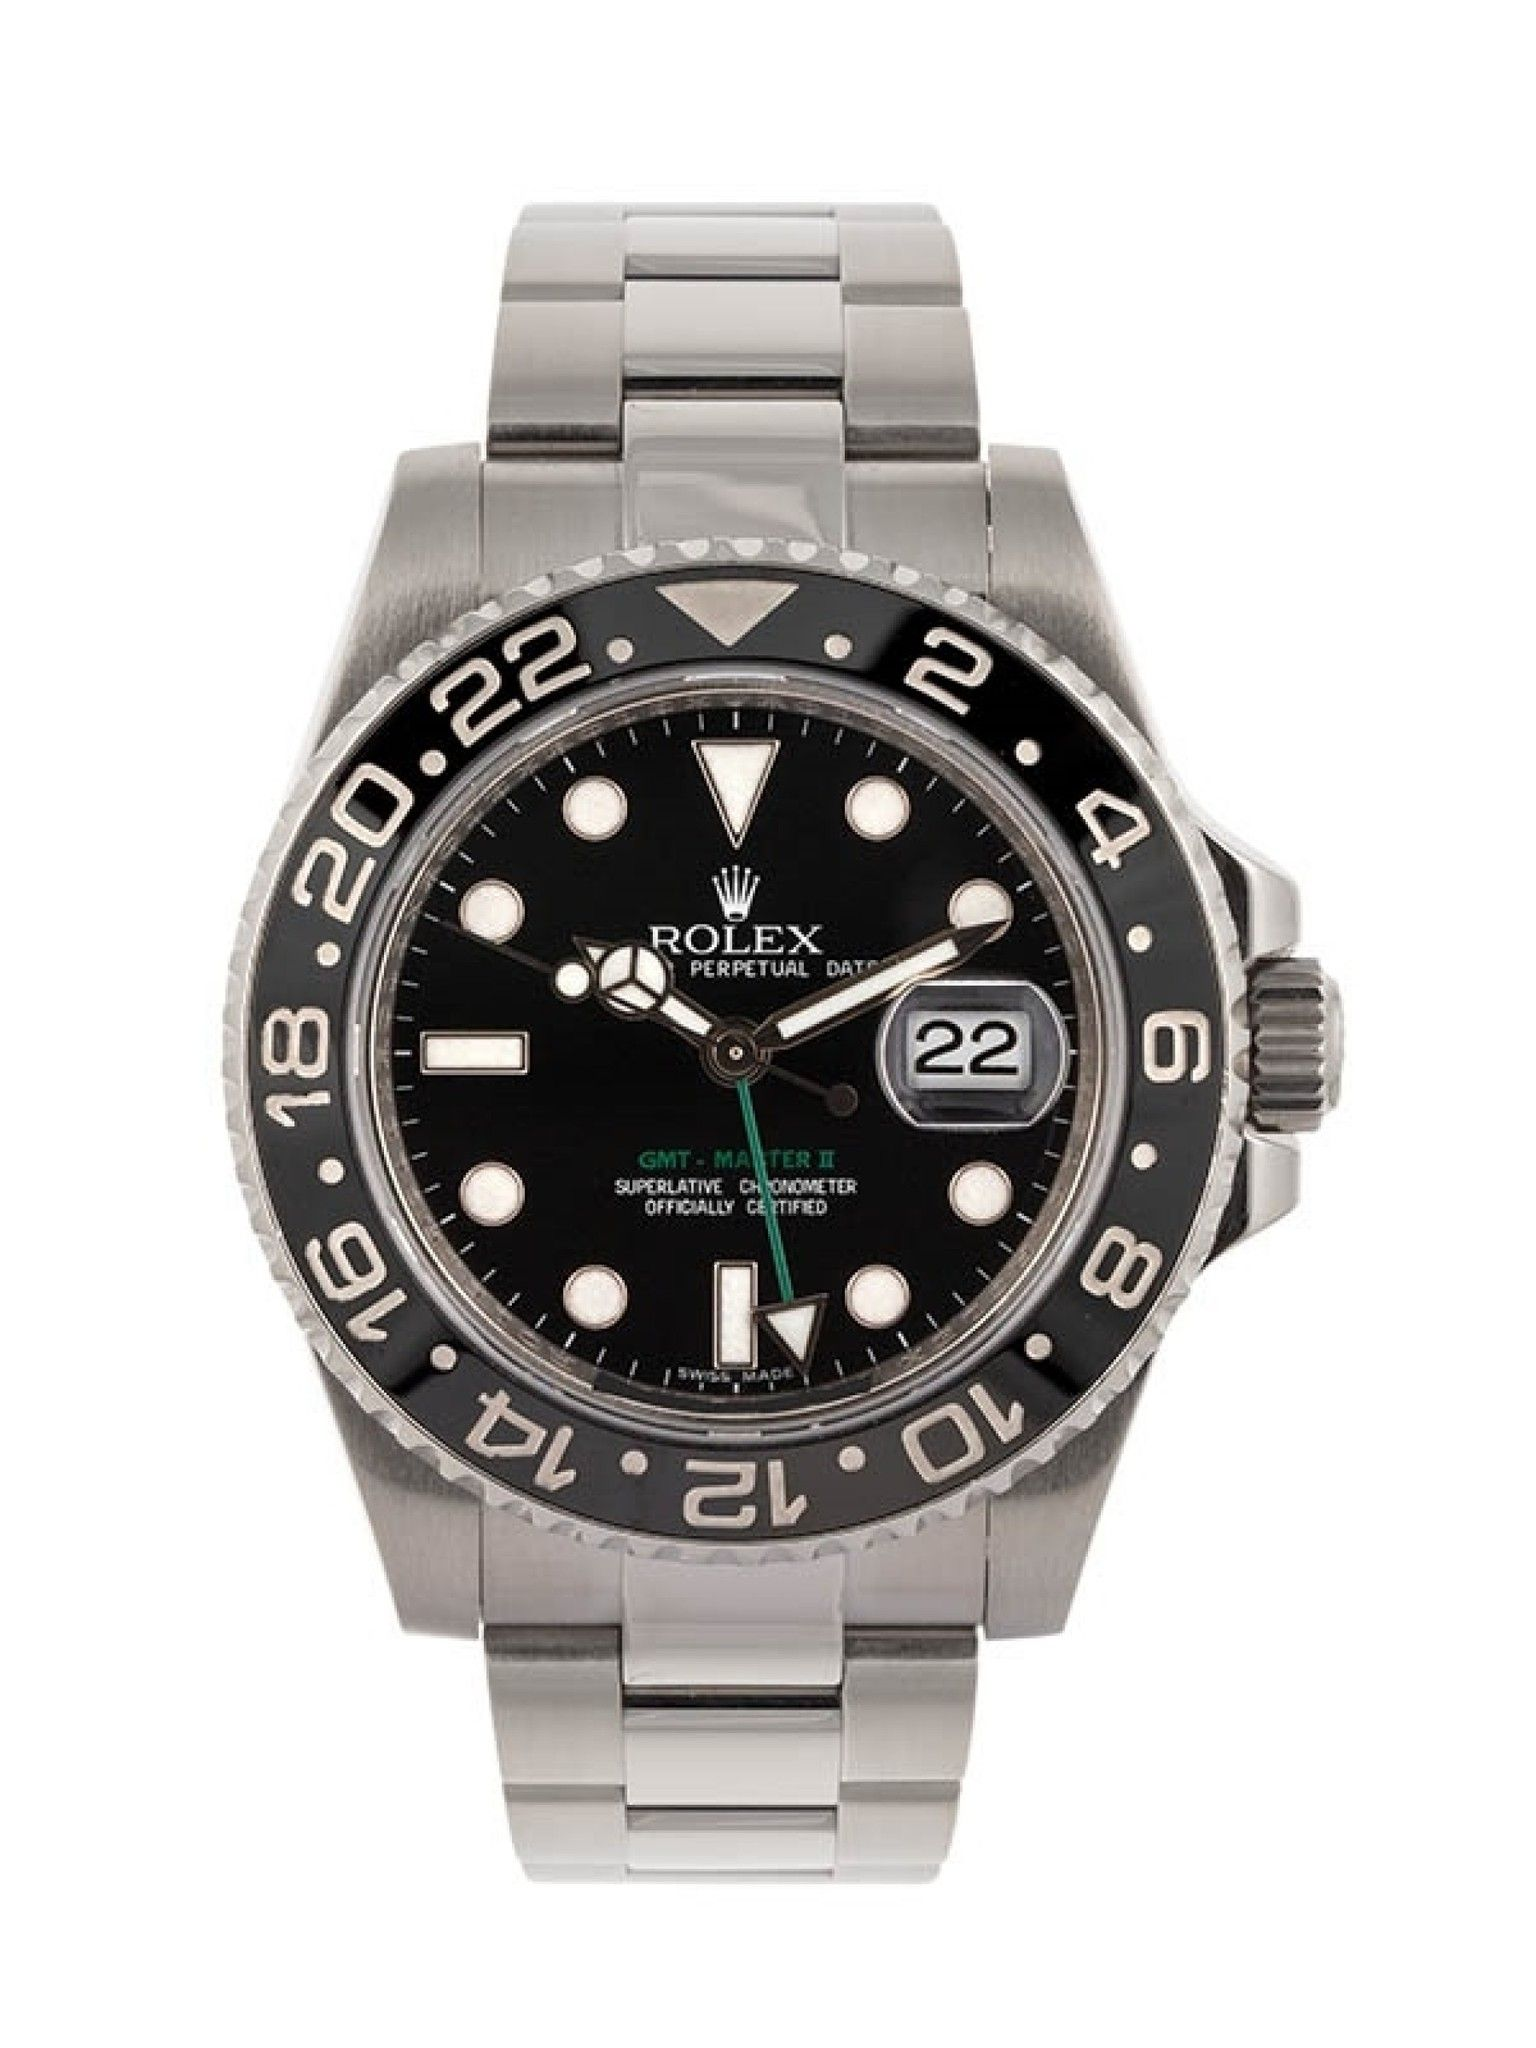 ROLEX GMT-MASTER II 40MM IN ACCIAIO REFERENZA 116710LN